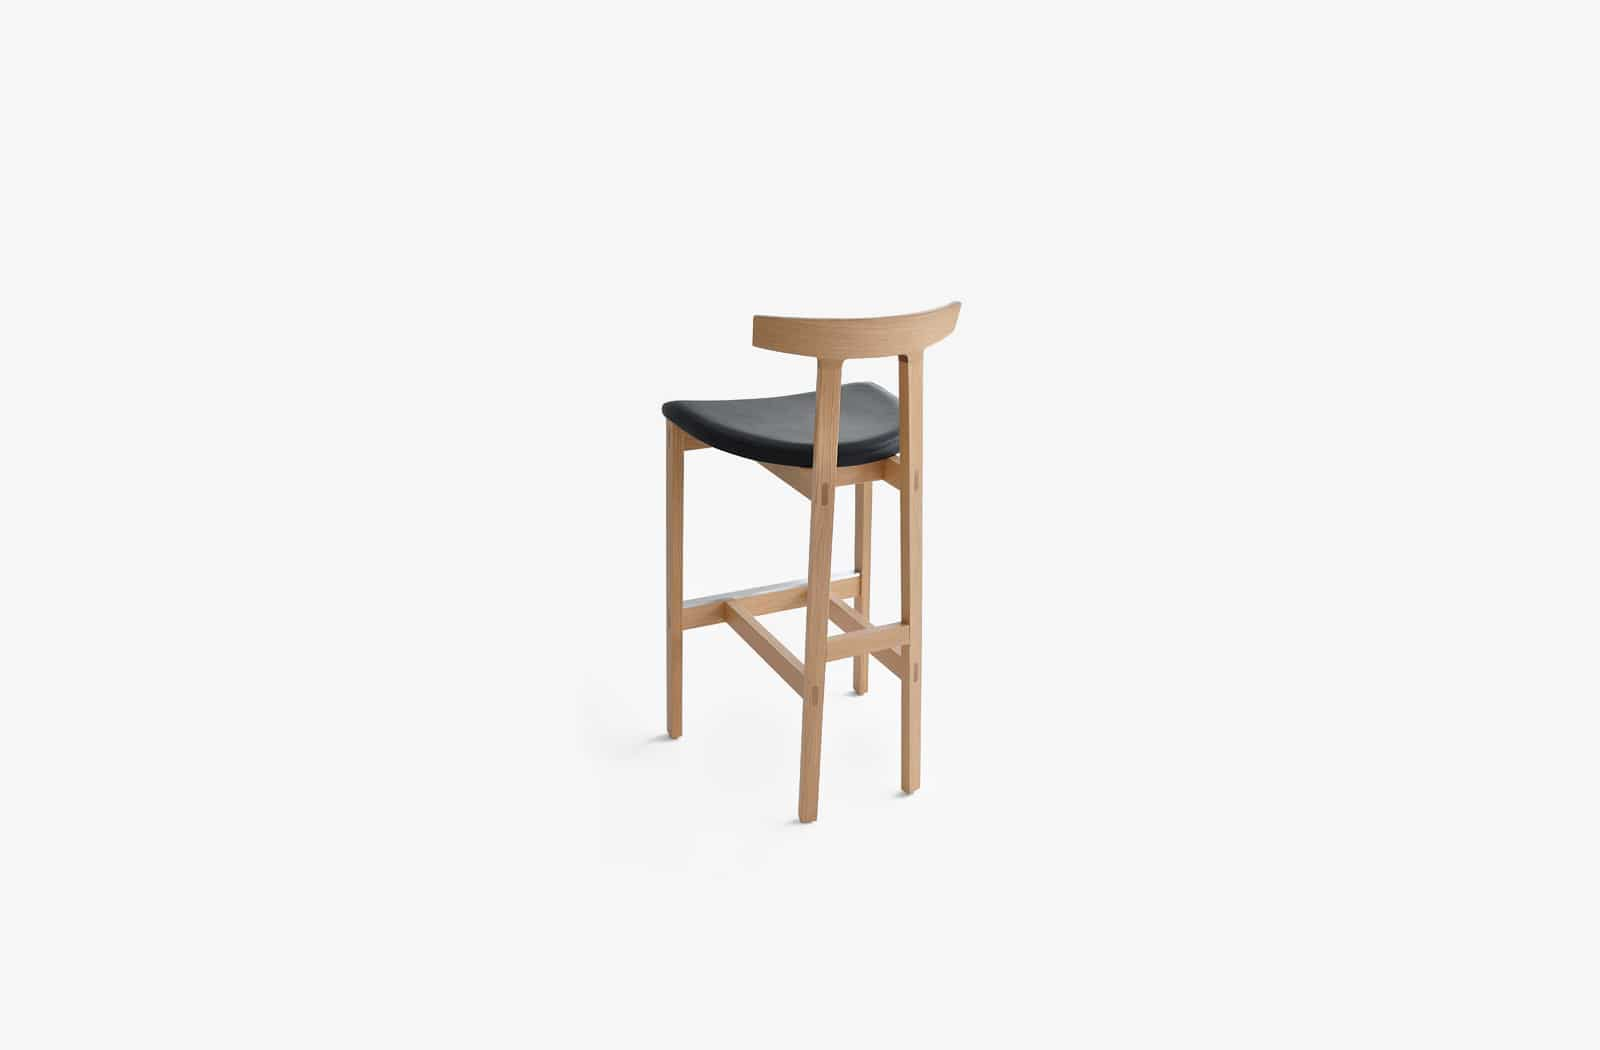 Bensen Torii Stool  0004 DSC 1003 fixed